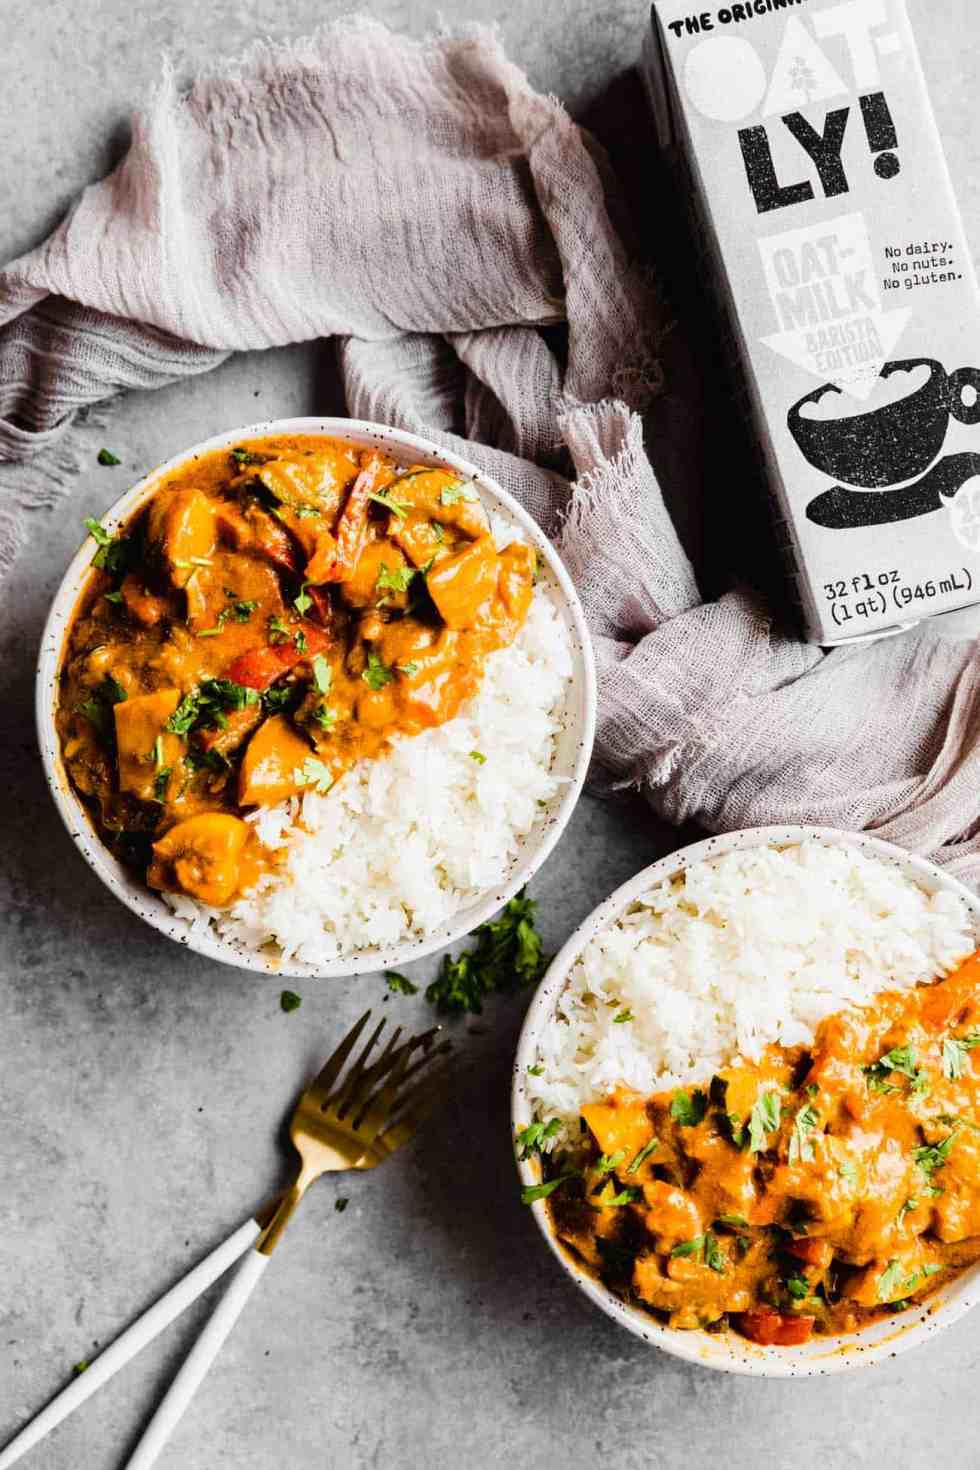 two bowls of Thai red curry with white rice and a container of Oatly